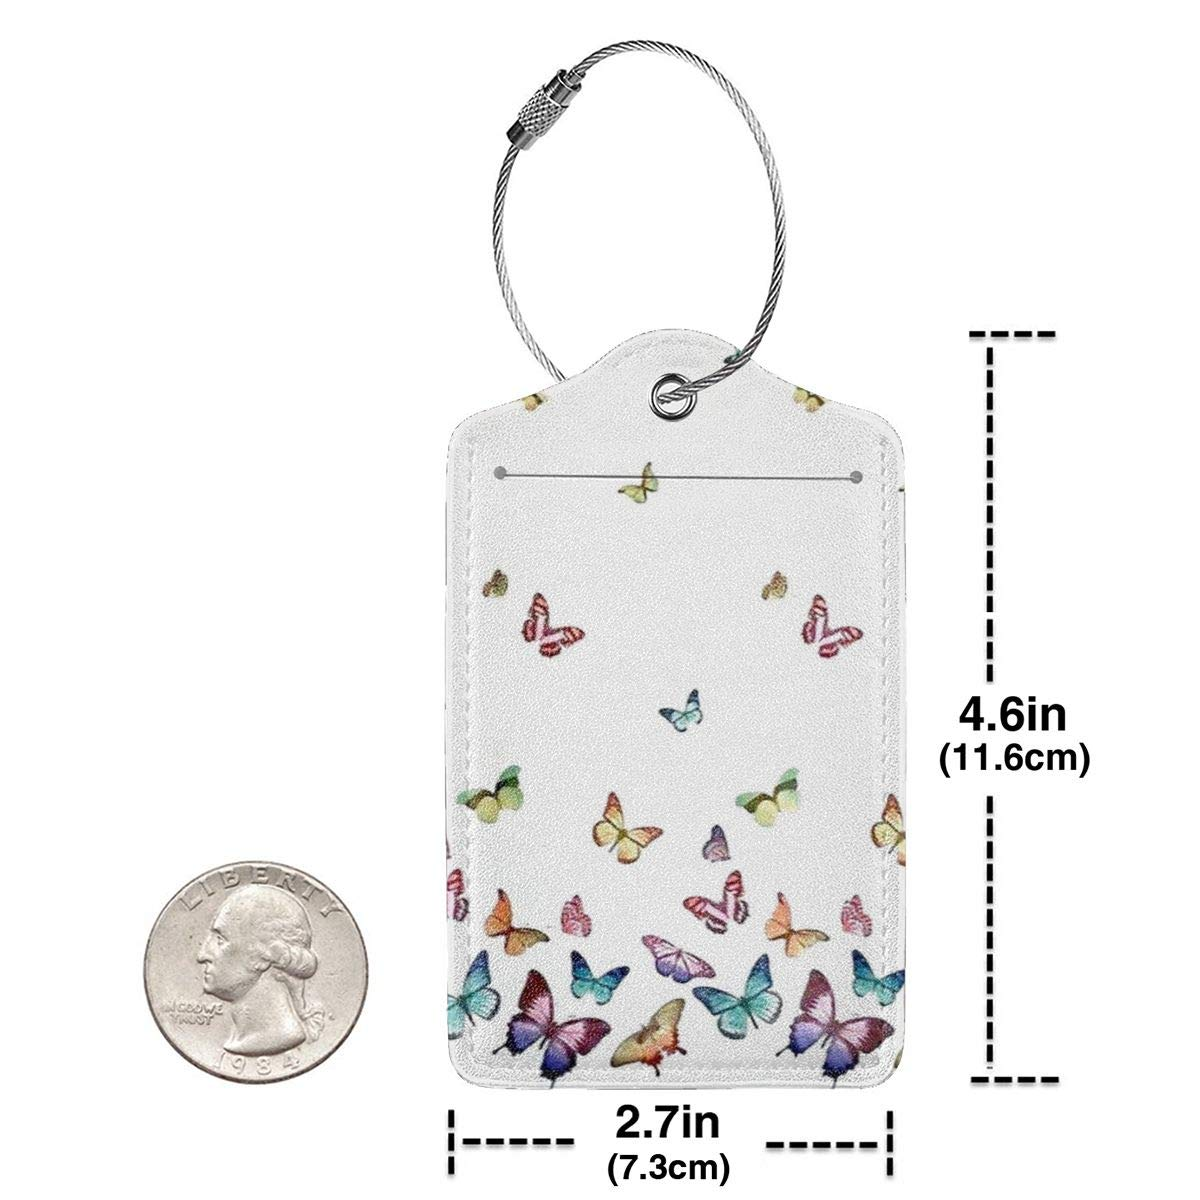 Leather Luggage Tag Spring Summer Butterflies Butterfly Luggage Tags For Suitcase Travel Lover Gifts For Men Women 2 PCS